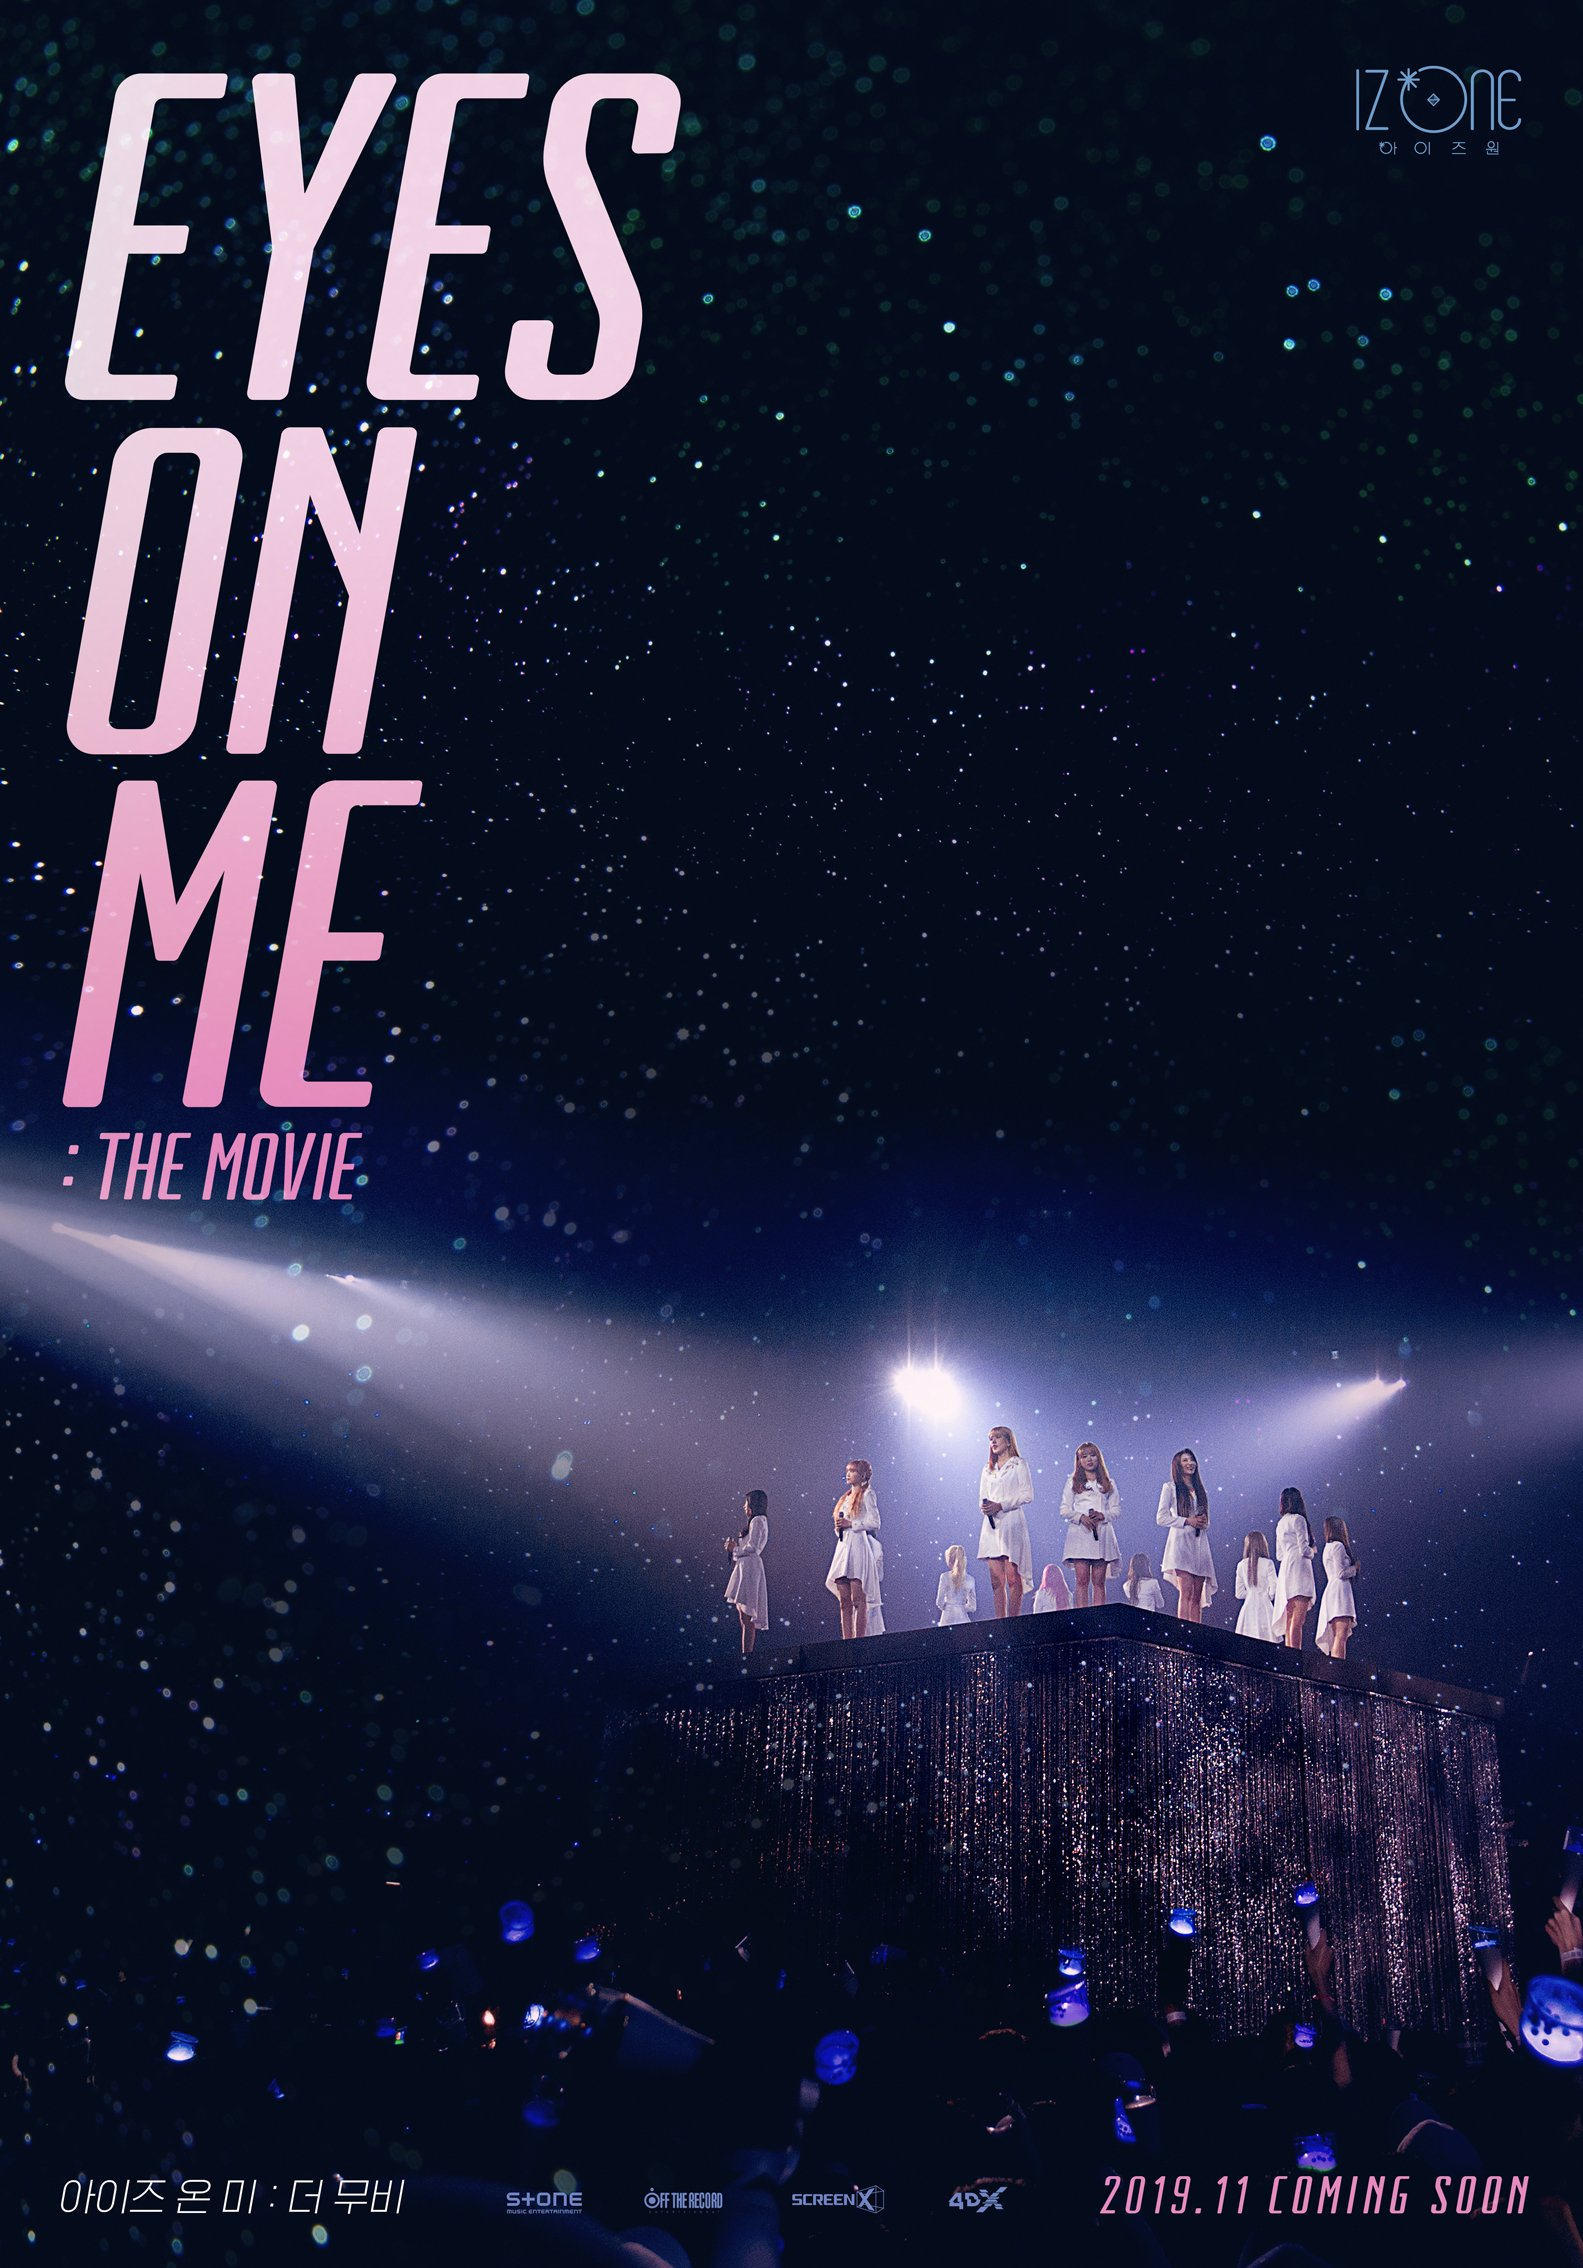 Eyes On Me: The Movie/Gallery